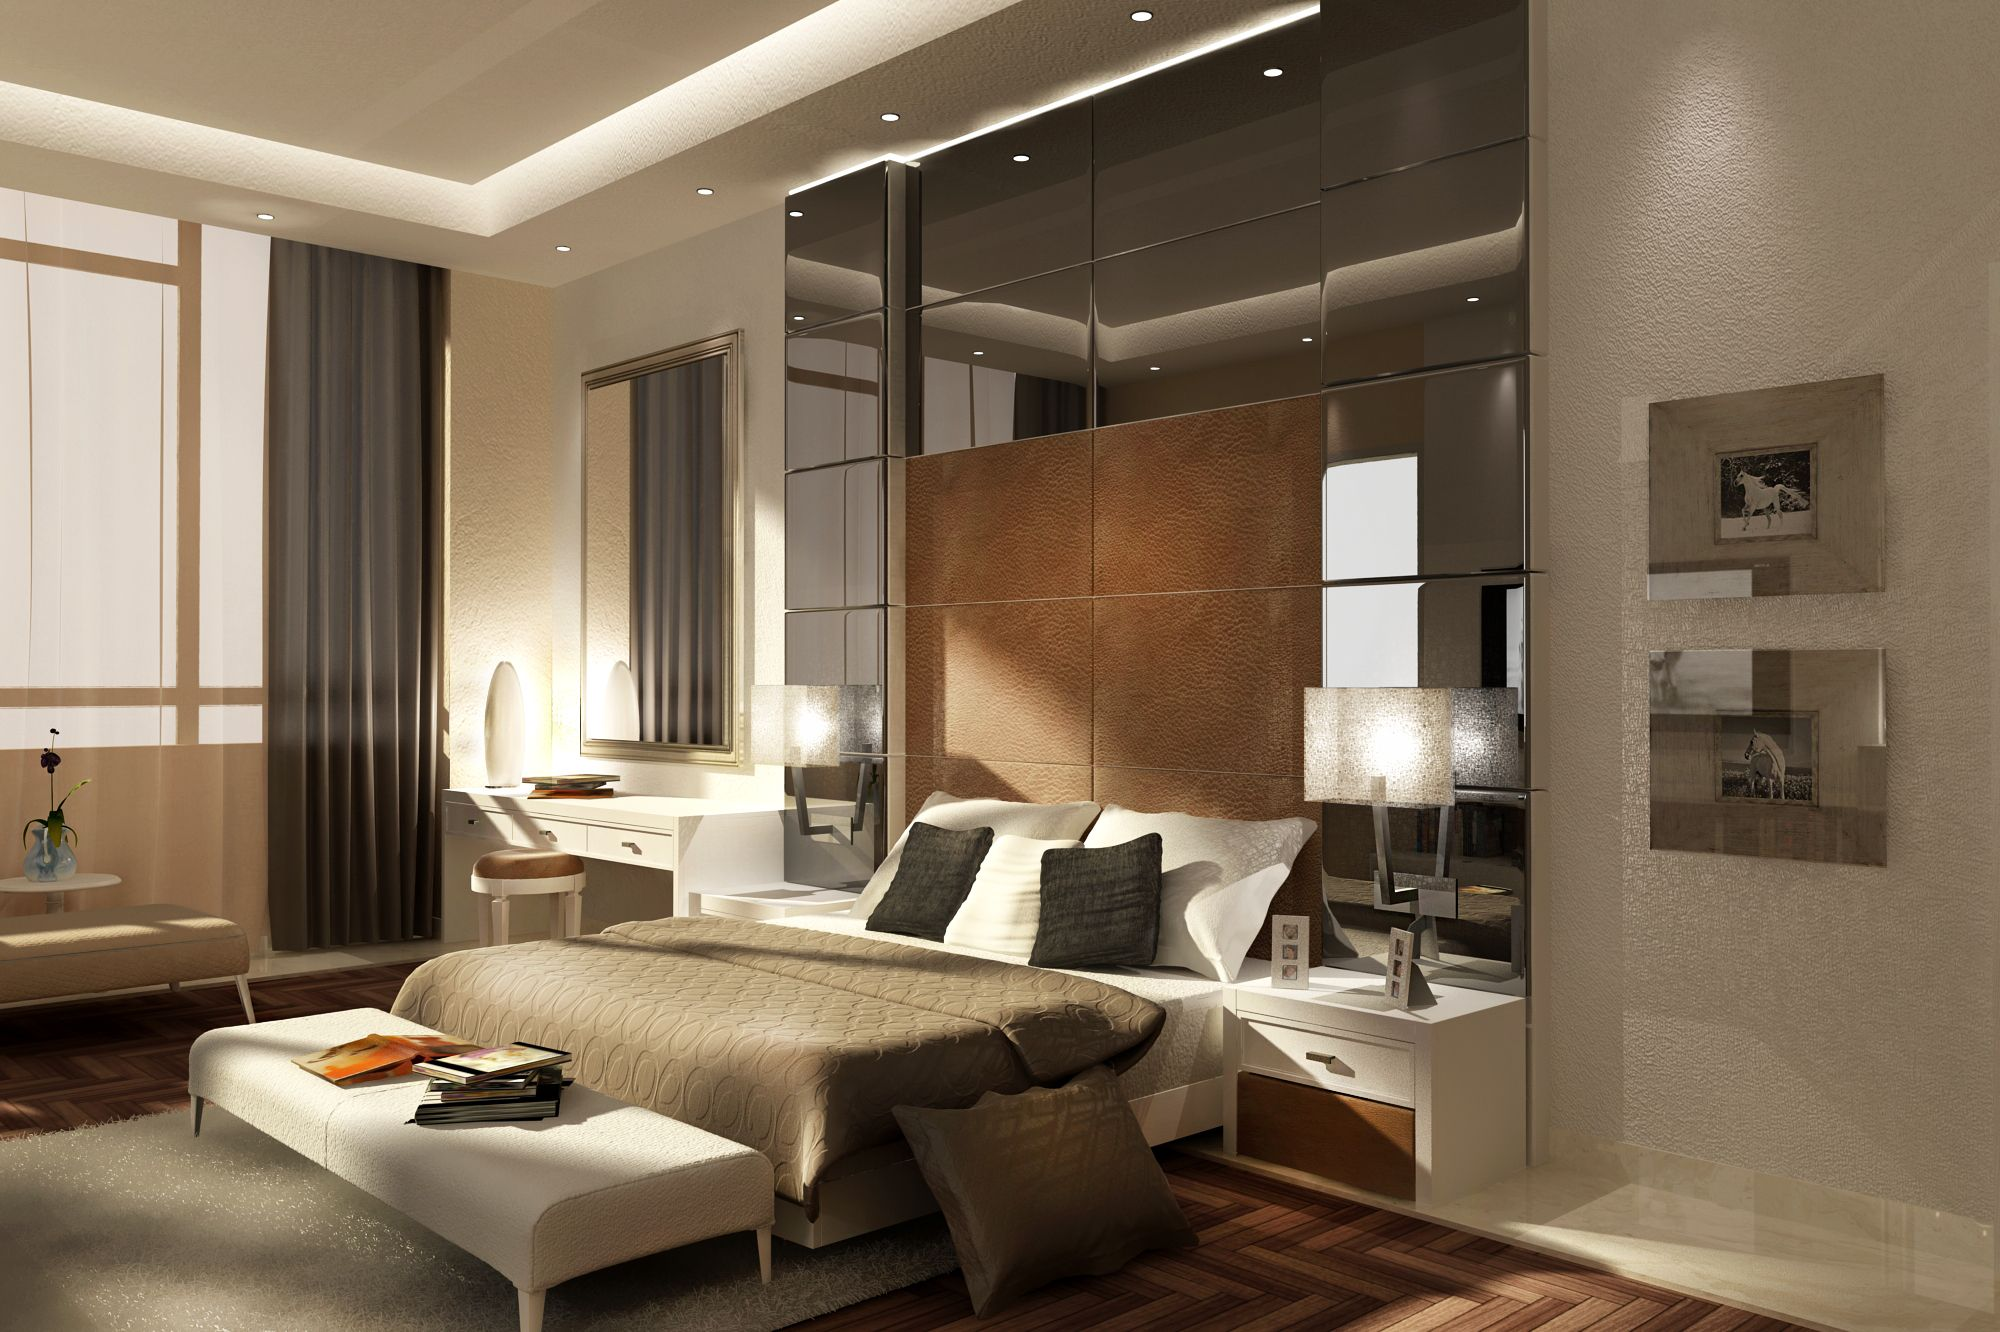 3d render 3d max interior design bedroom design modern master bedroom - 3d Design Bedroom